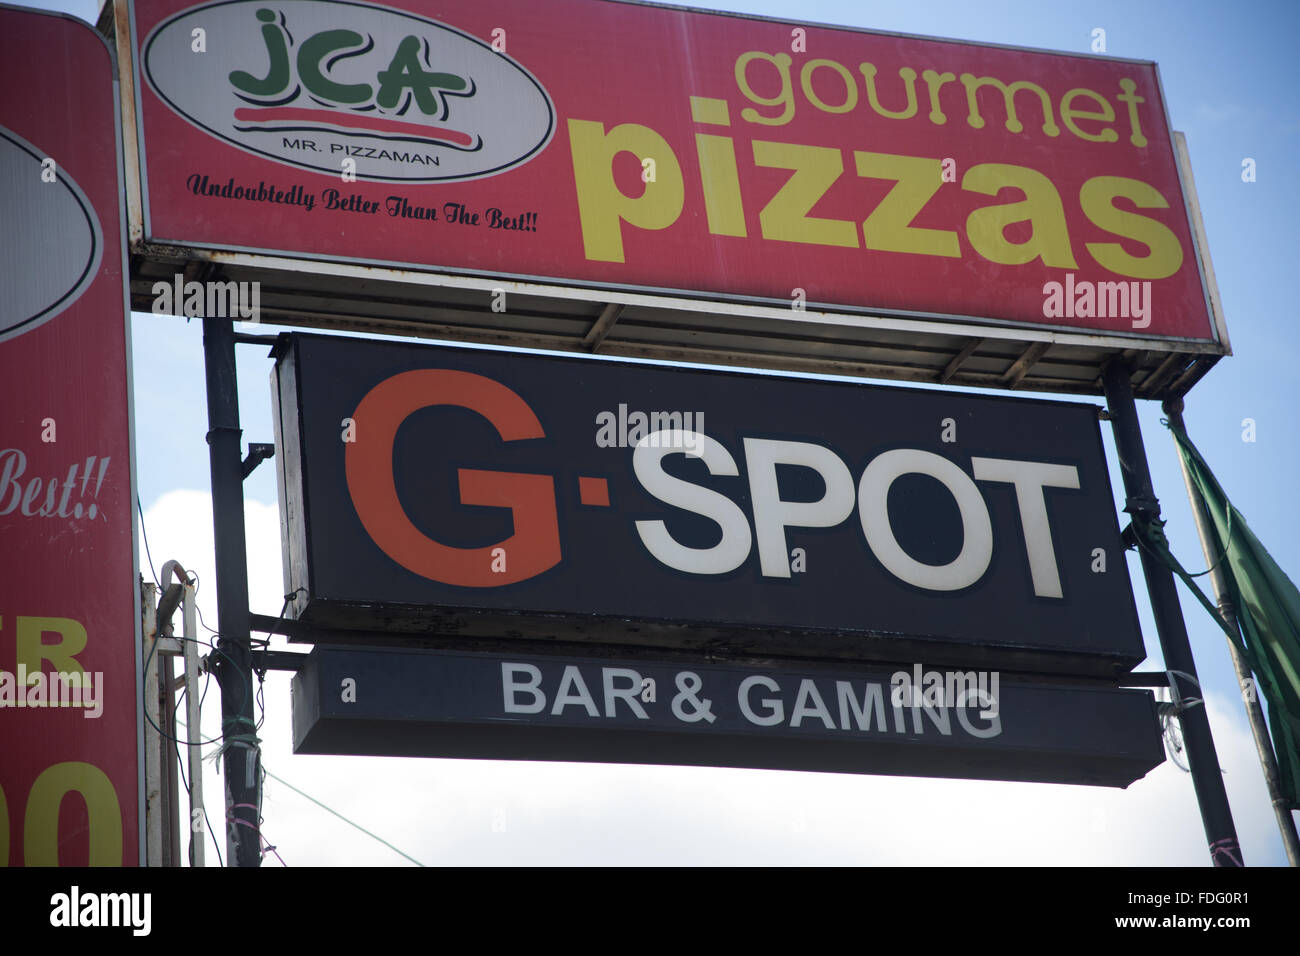 A humourous sign advertising a local bar in Cebu City,Philippines - Stock Image